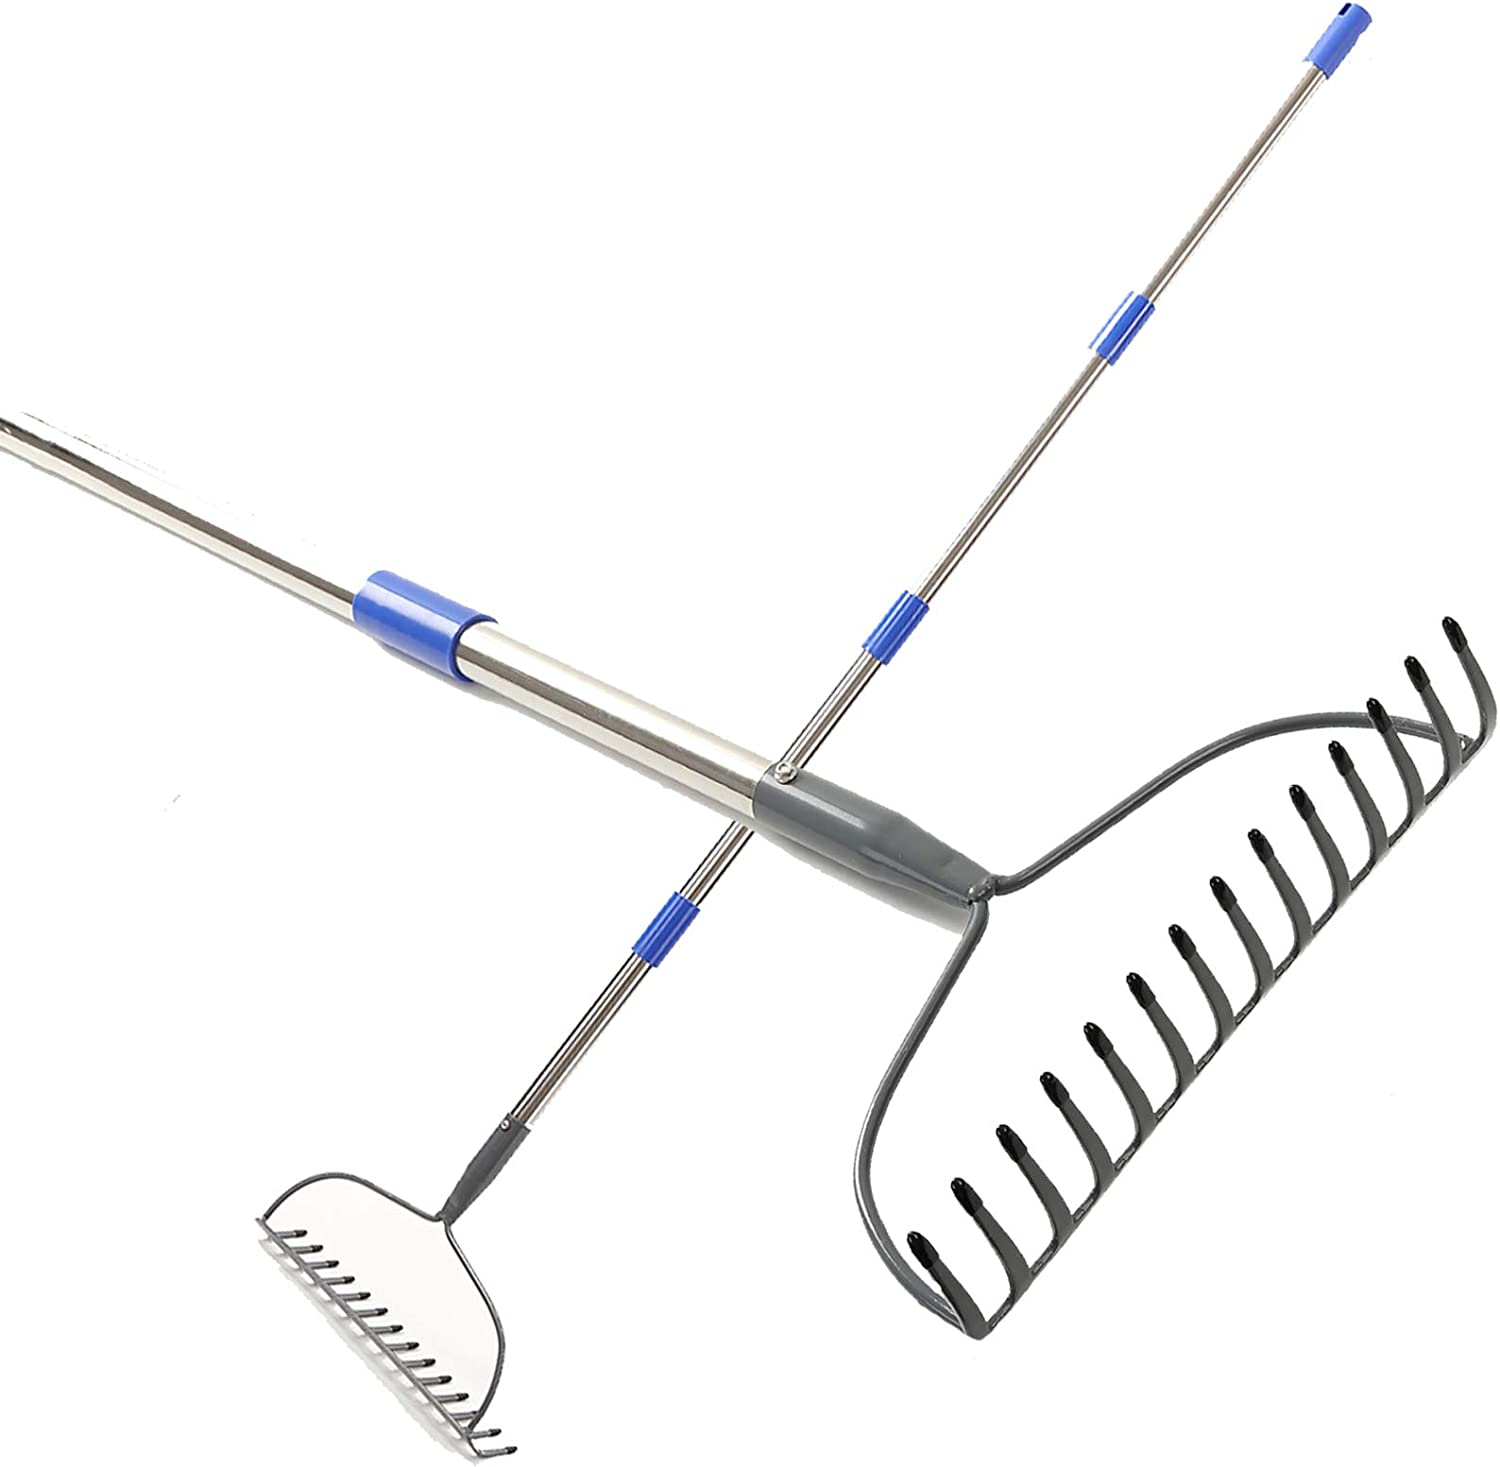 Harrms Bow Rake-5 FT Heavy Duty Raker with Rubber Grip Handle for Gather Fallen Leaves Yard Lawn and Garden with 14 Tines